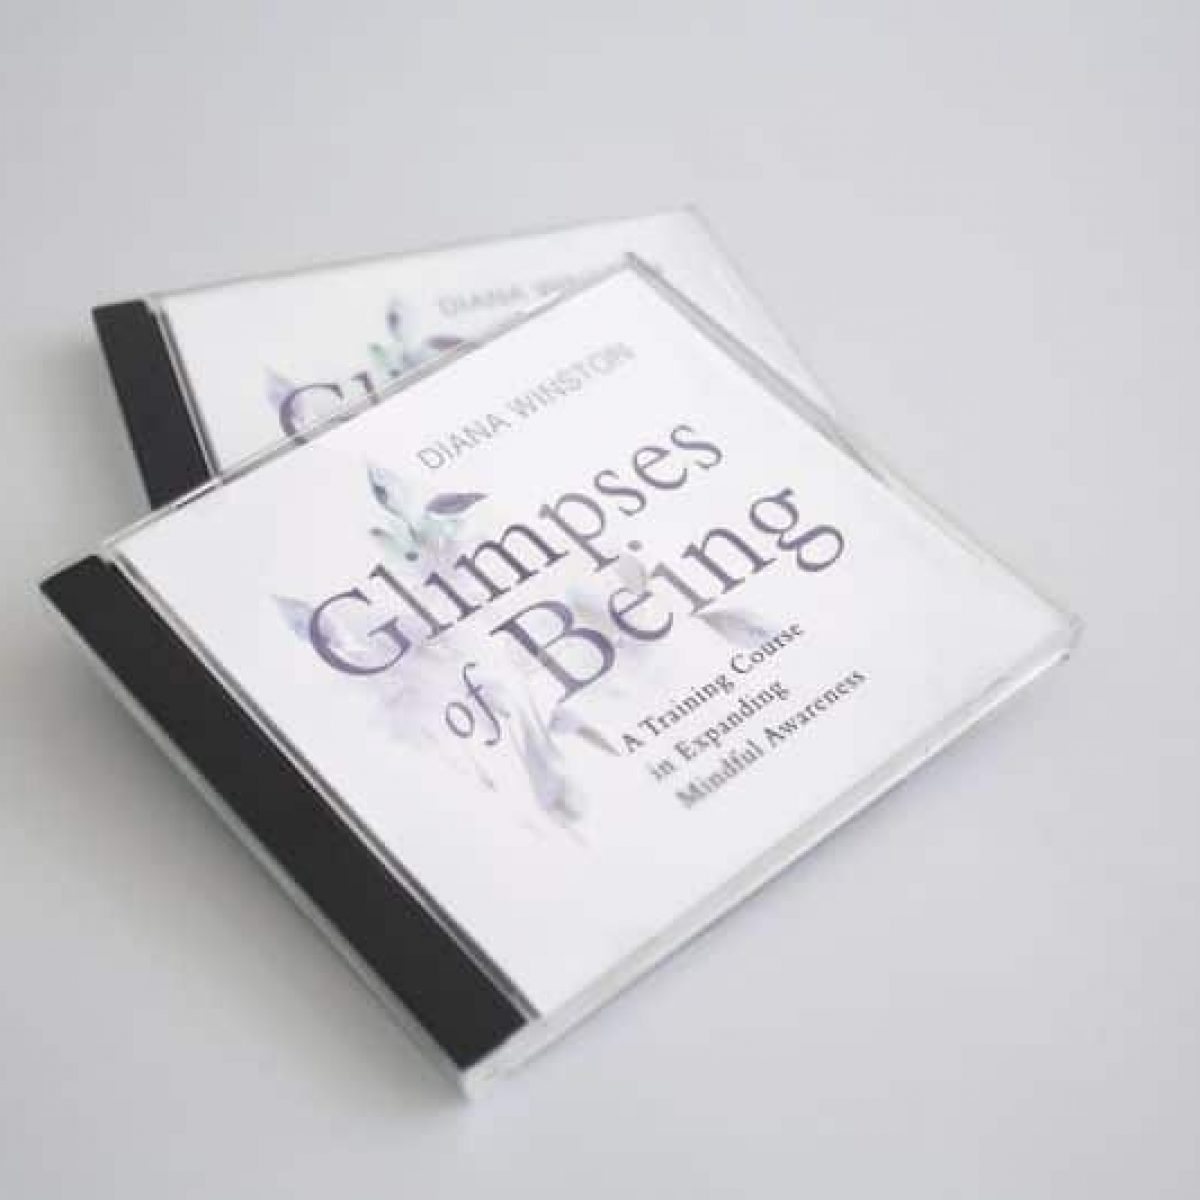 glimpses-of-being-diana-winston-cover-art-4